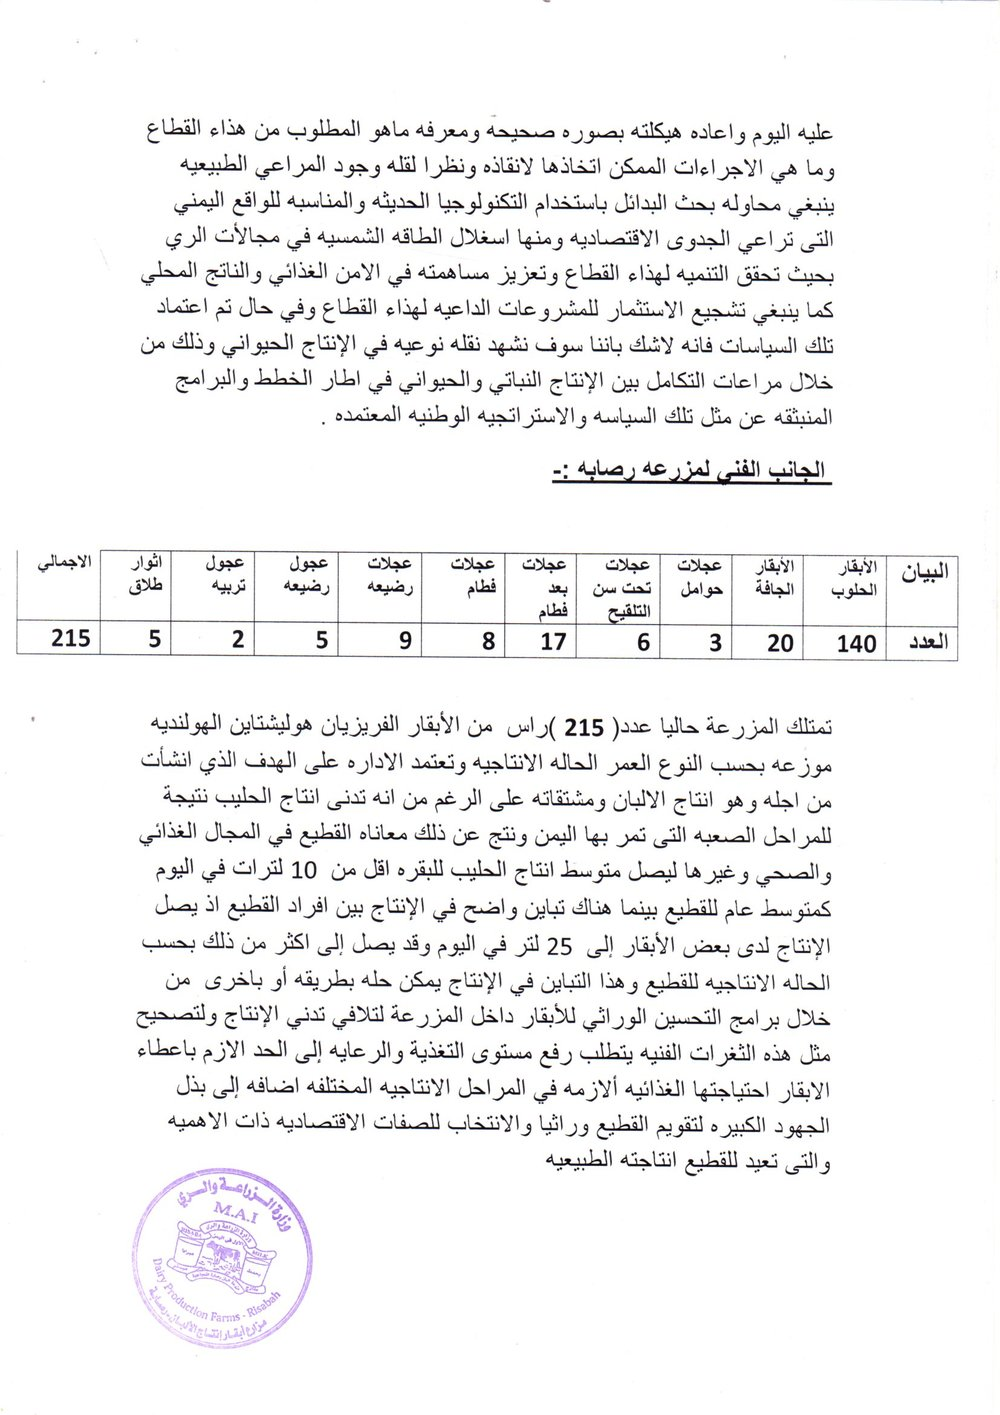 dhamar report rosabah farm for OWAP AR 3 NOV 2018 Page 2.jpg